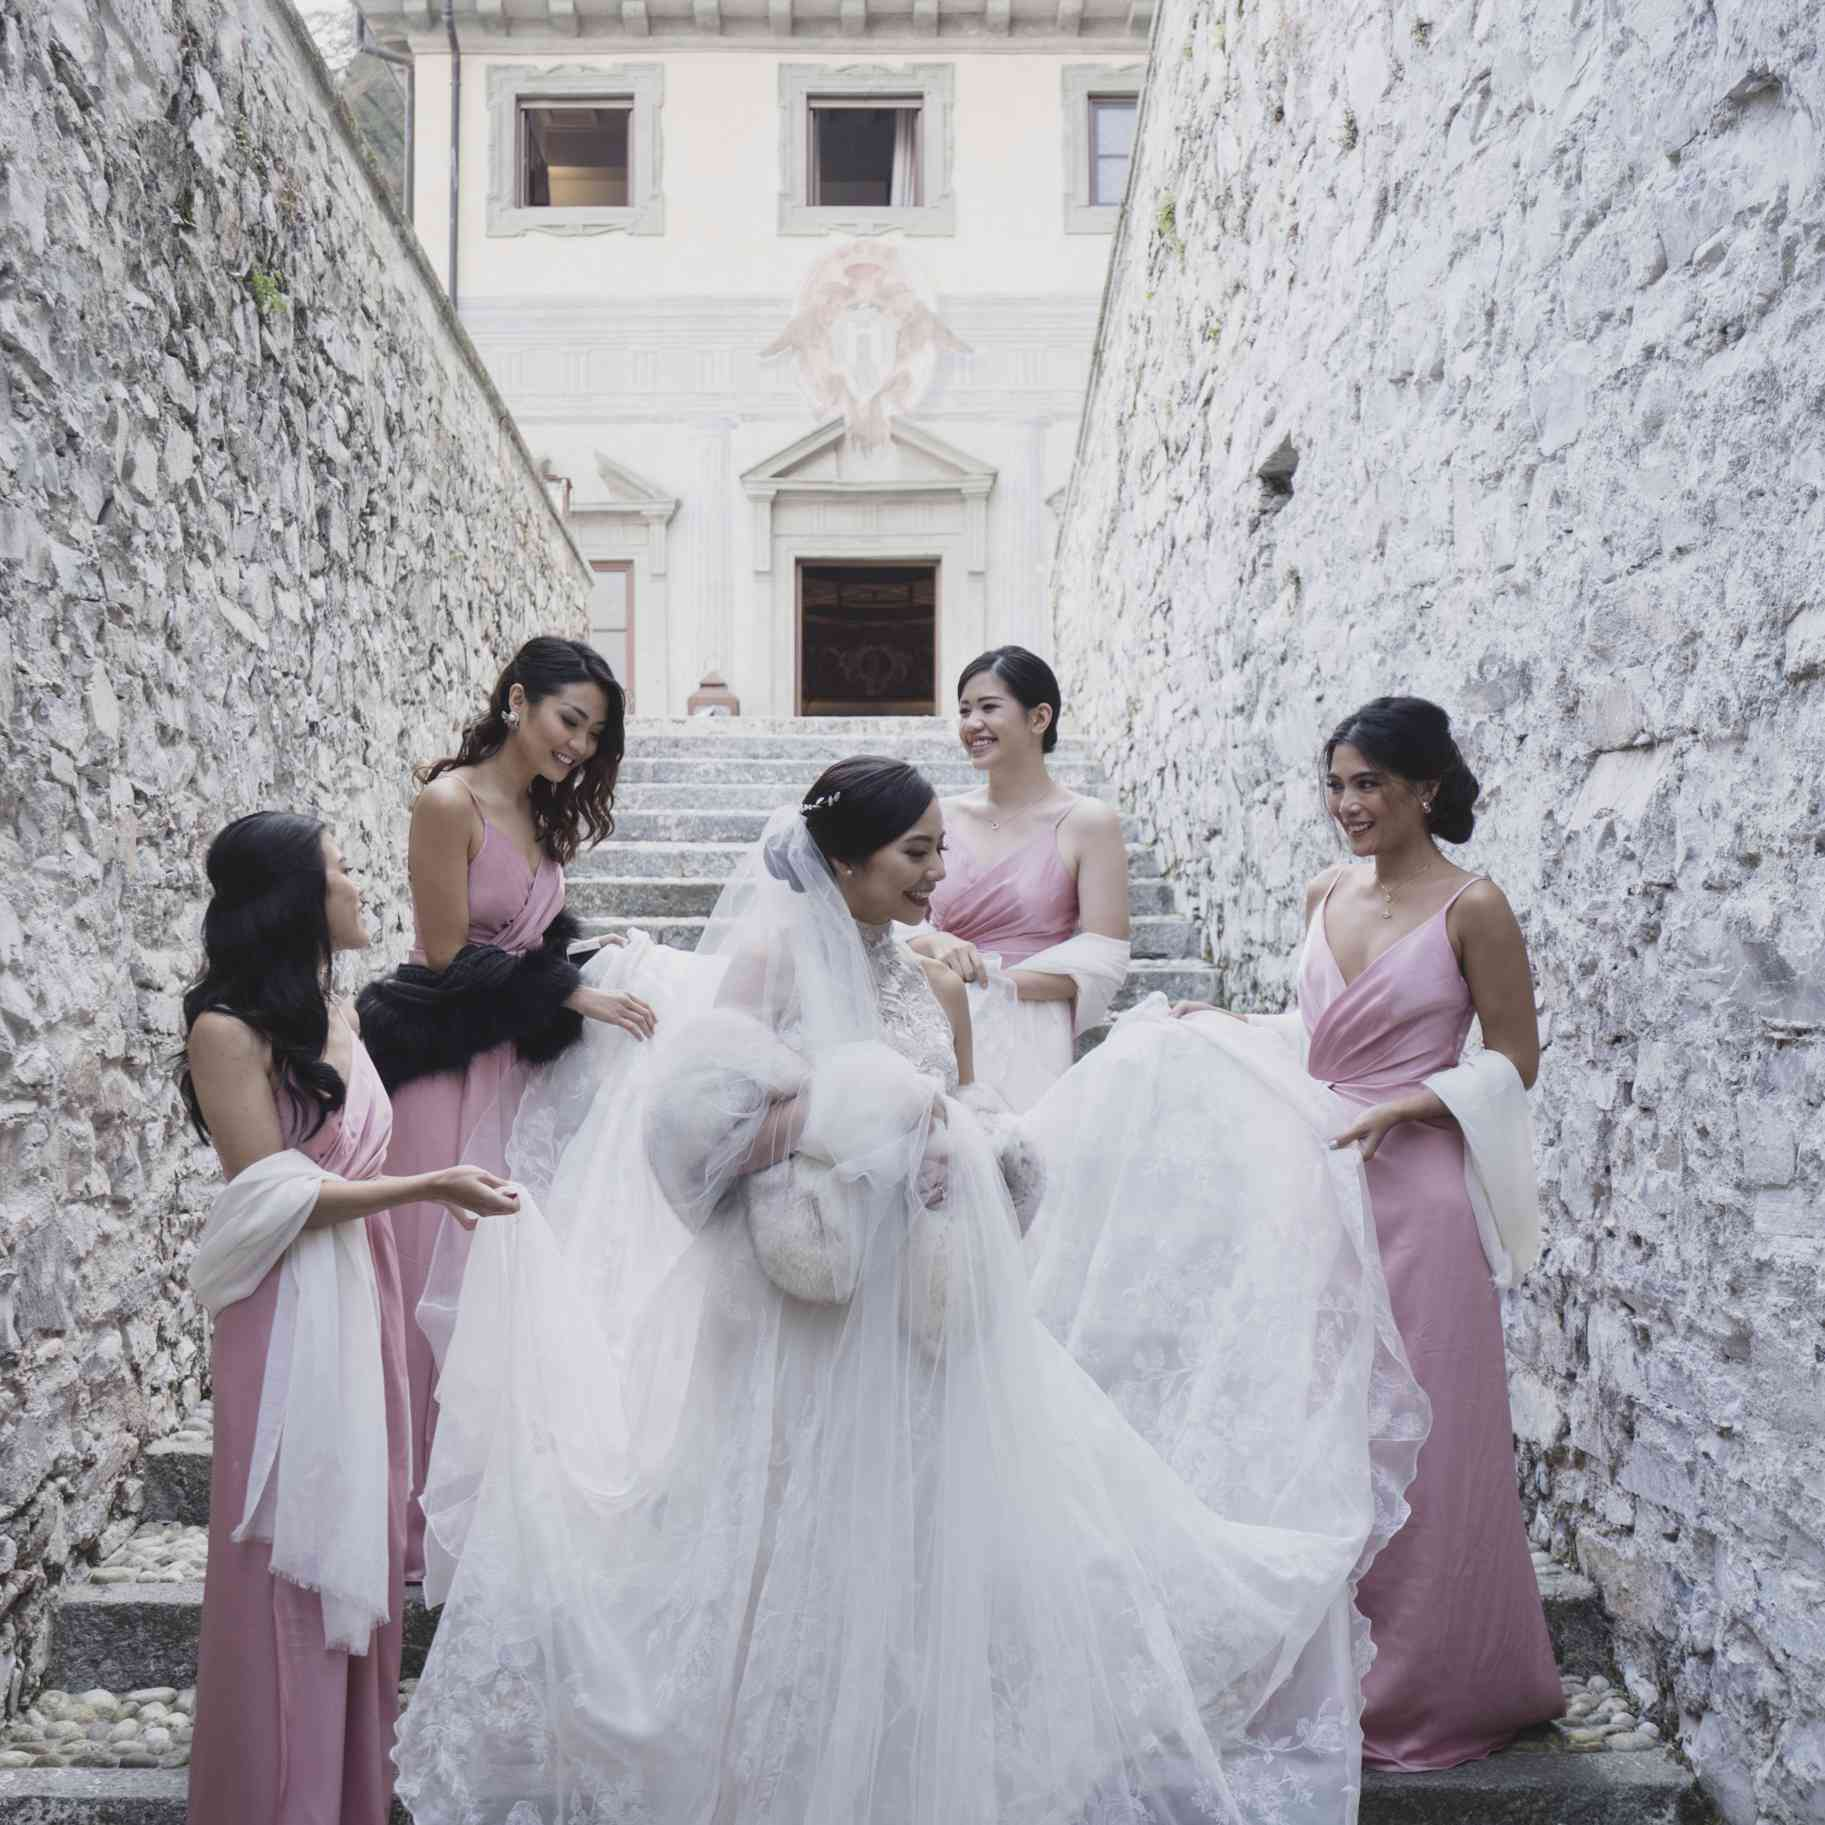 Bride with bridesmaids on stone steps